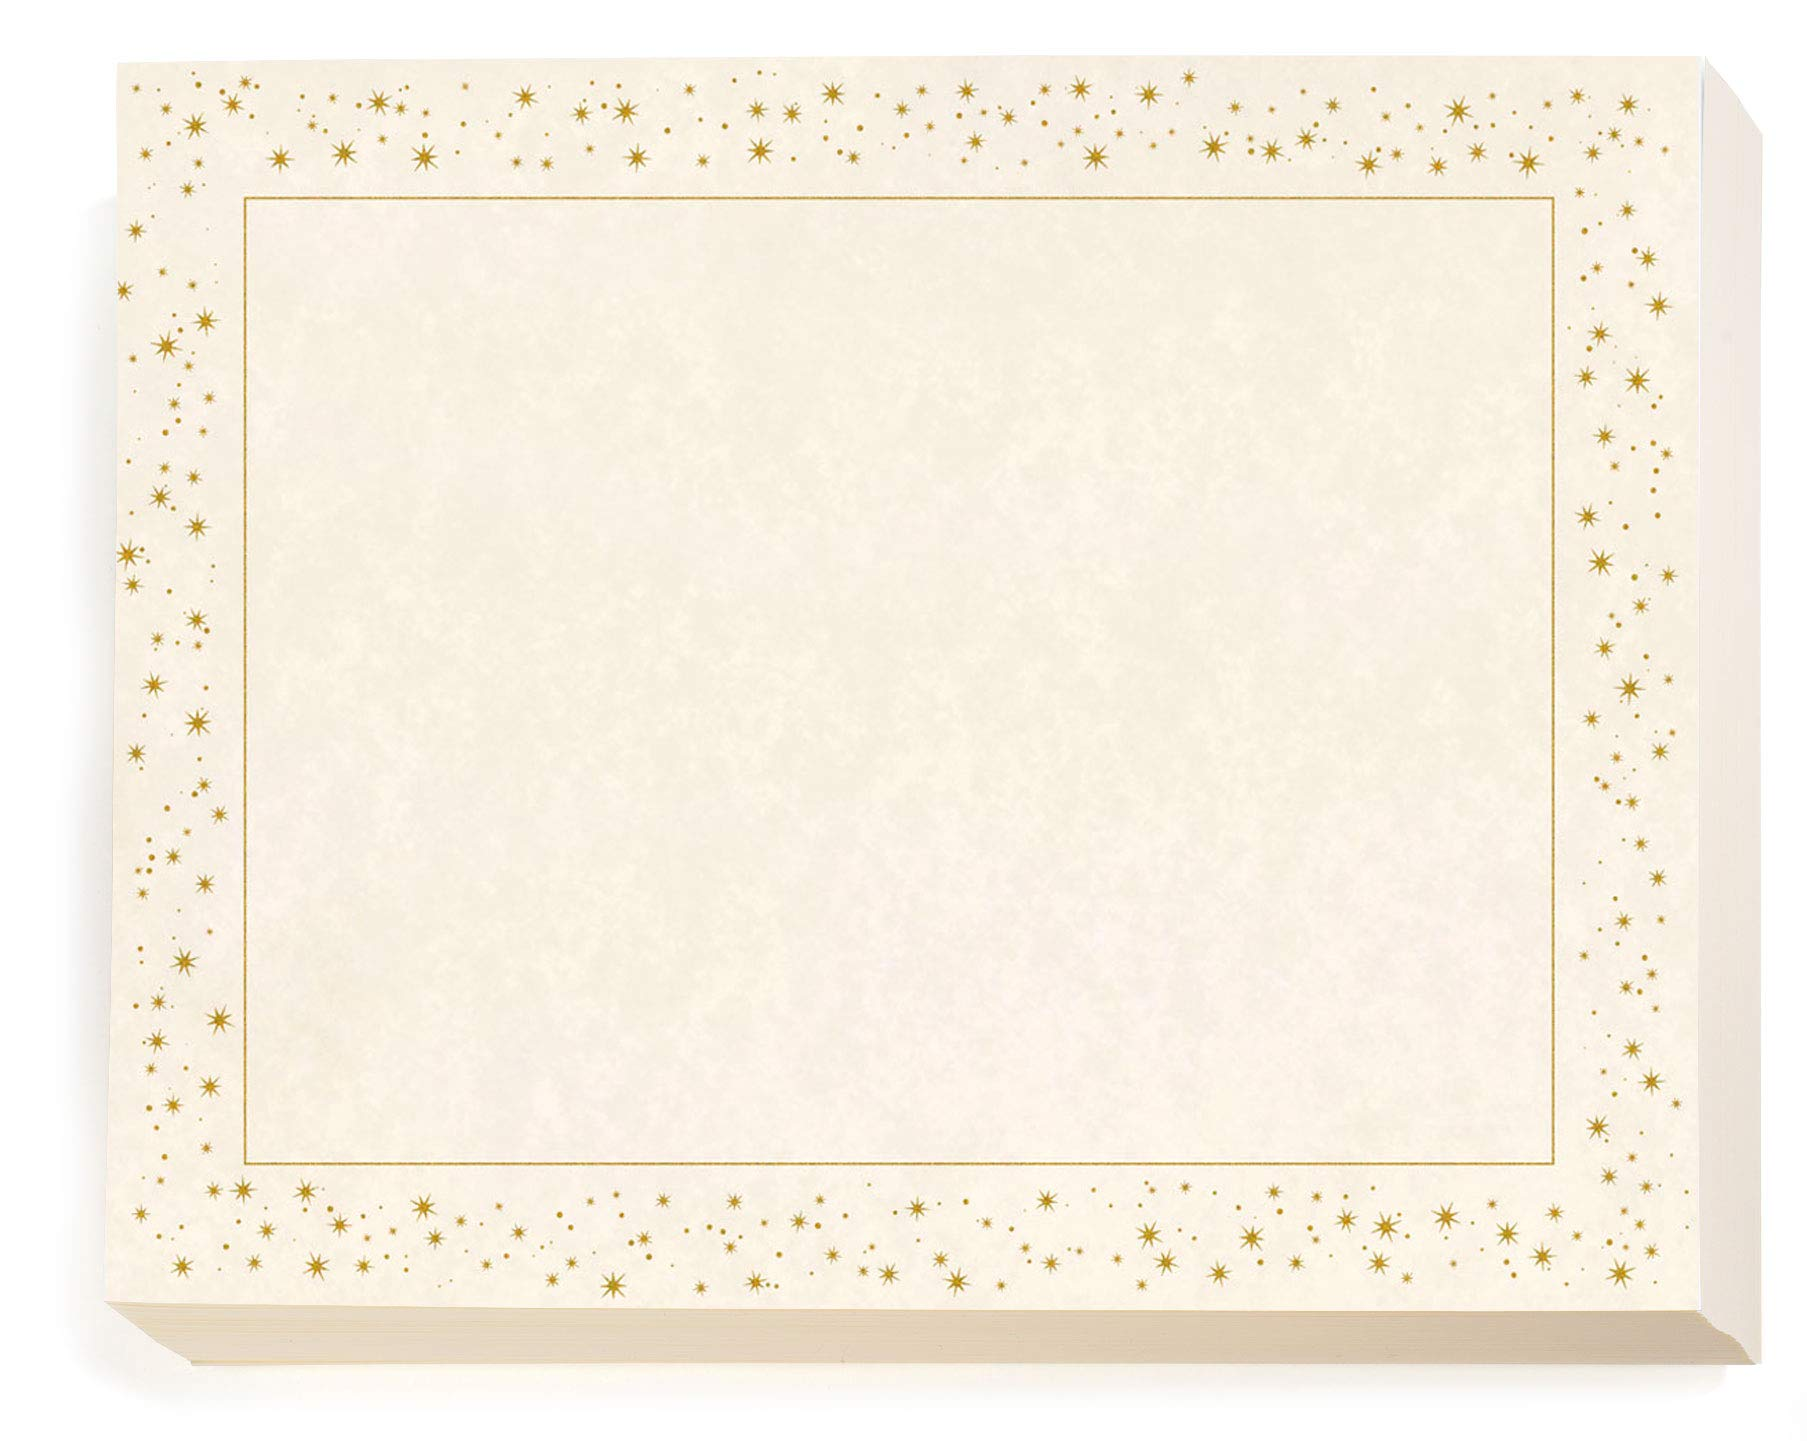 Gold Mini Stars Standard Certificates, 8 1/2 inch x 11 inch, 28lb Parchment Stock, 100 Count by PaperDirect